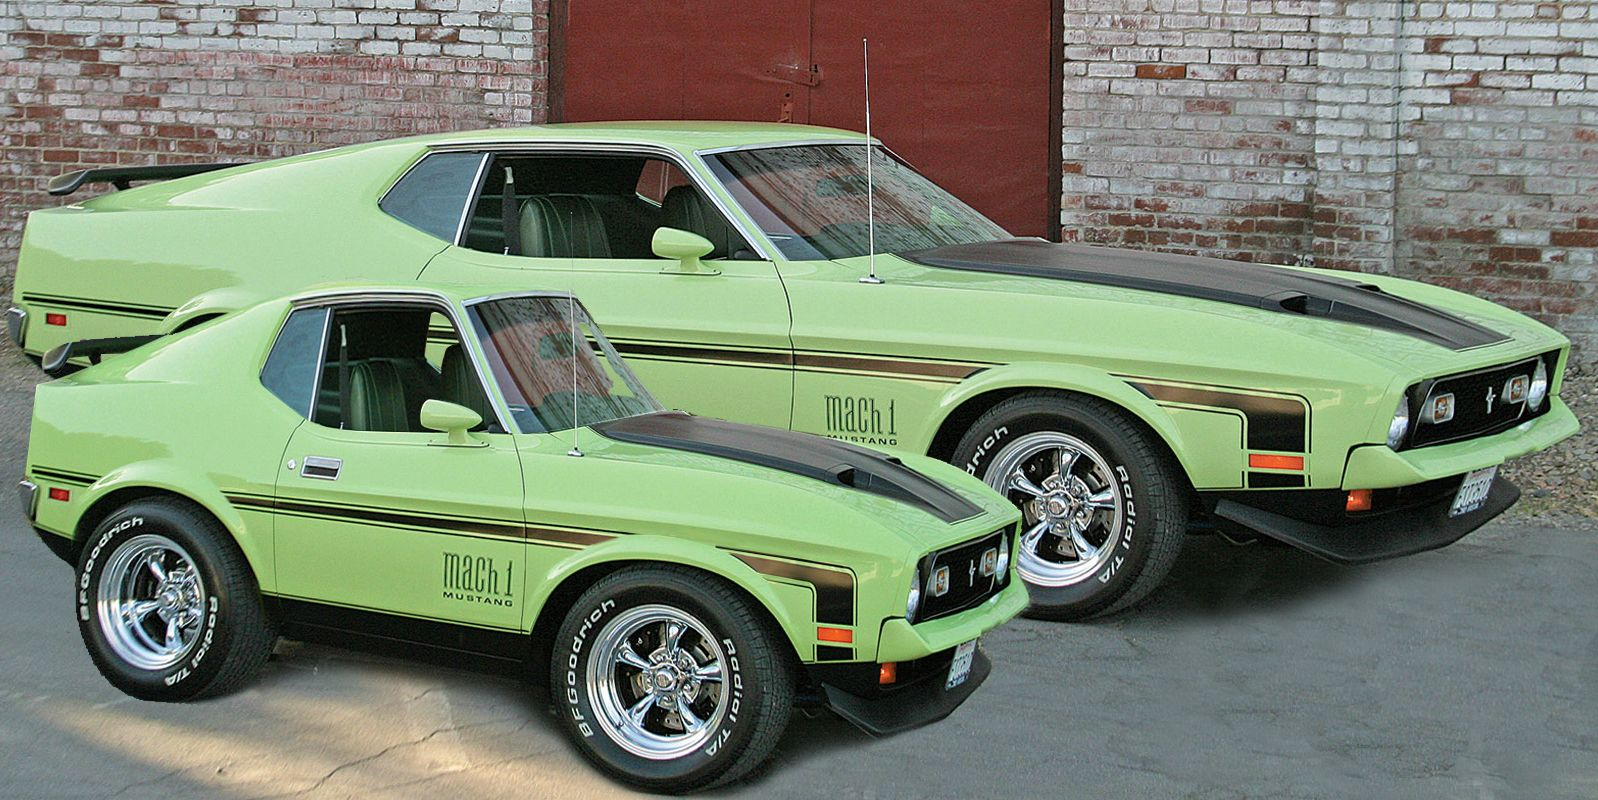 1971 Ford Mustang Mach 1 And Baby Smart Car Body Kits Smart Car Cute Cars